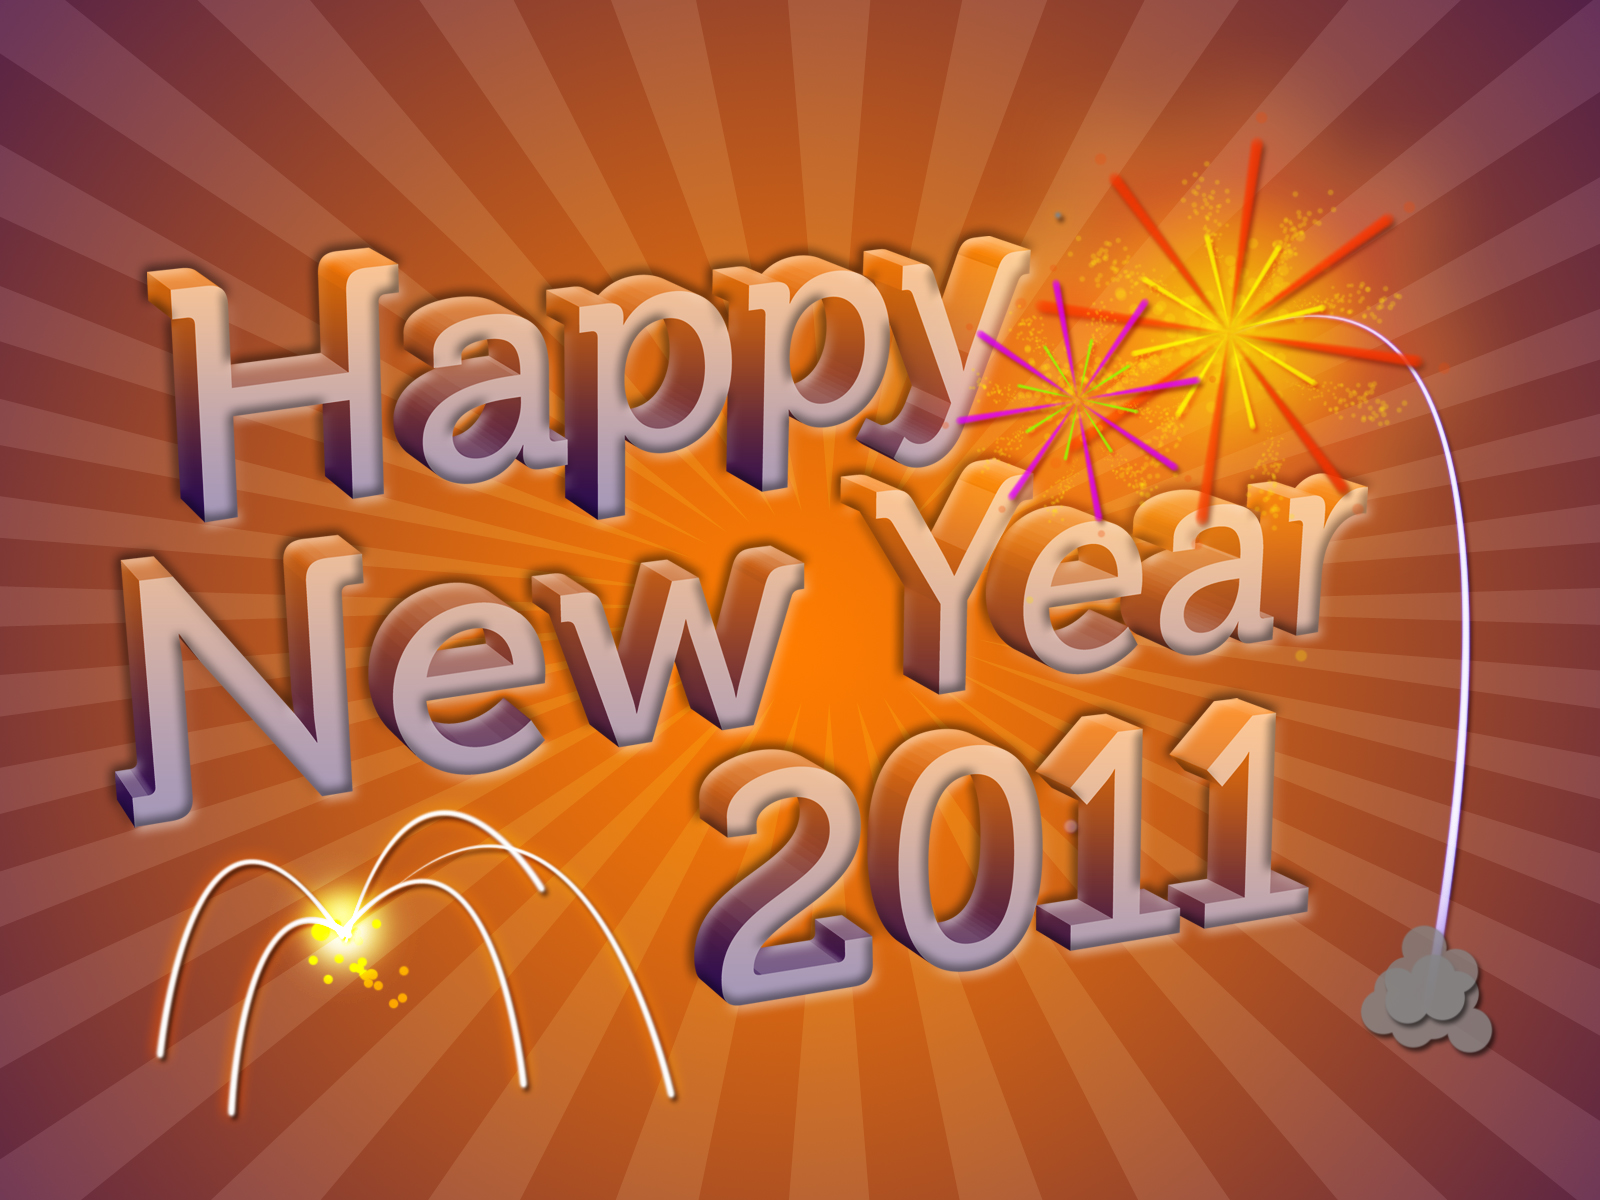 happy new year download,happy new year wallpapers,happy new year cell,happy new year 2010,happy new year mp3,download happy new year wallpaper,happy new year 2011 download,50 cent happy new year download,